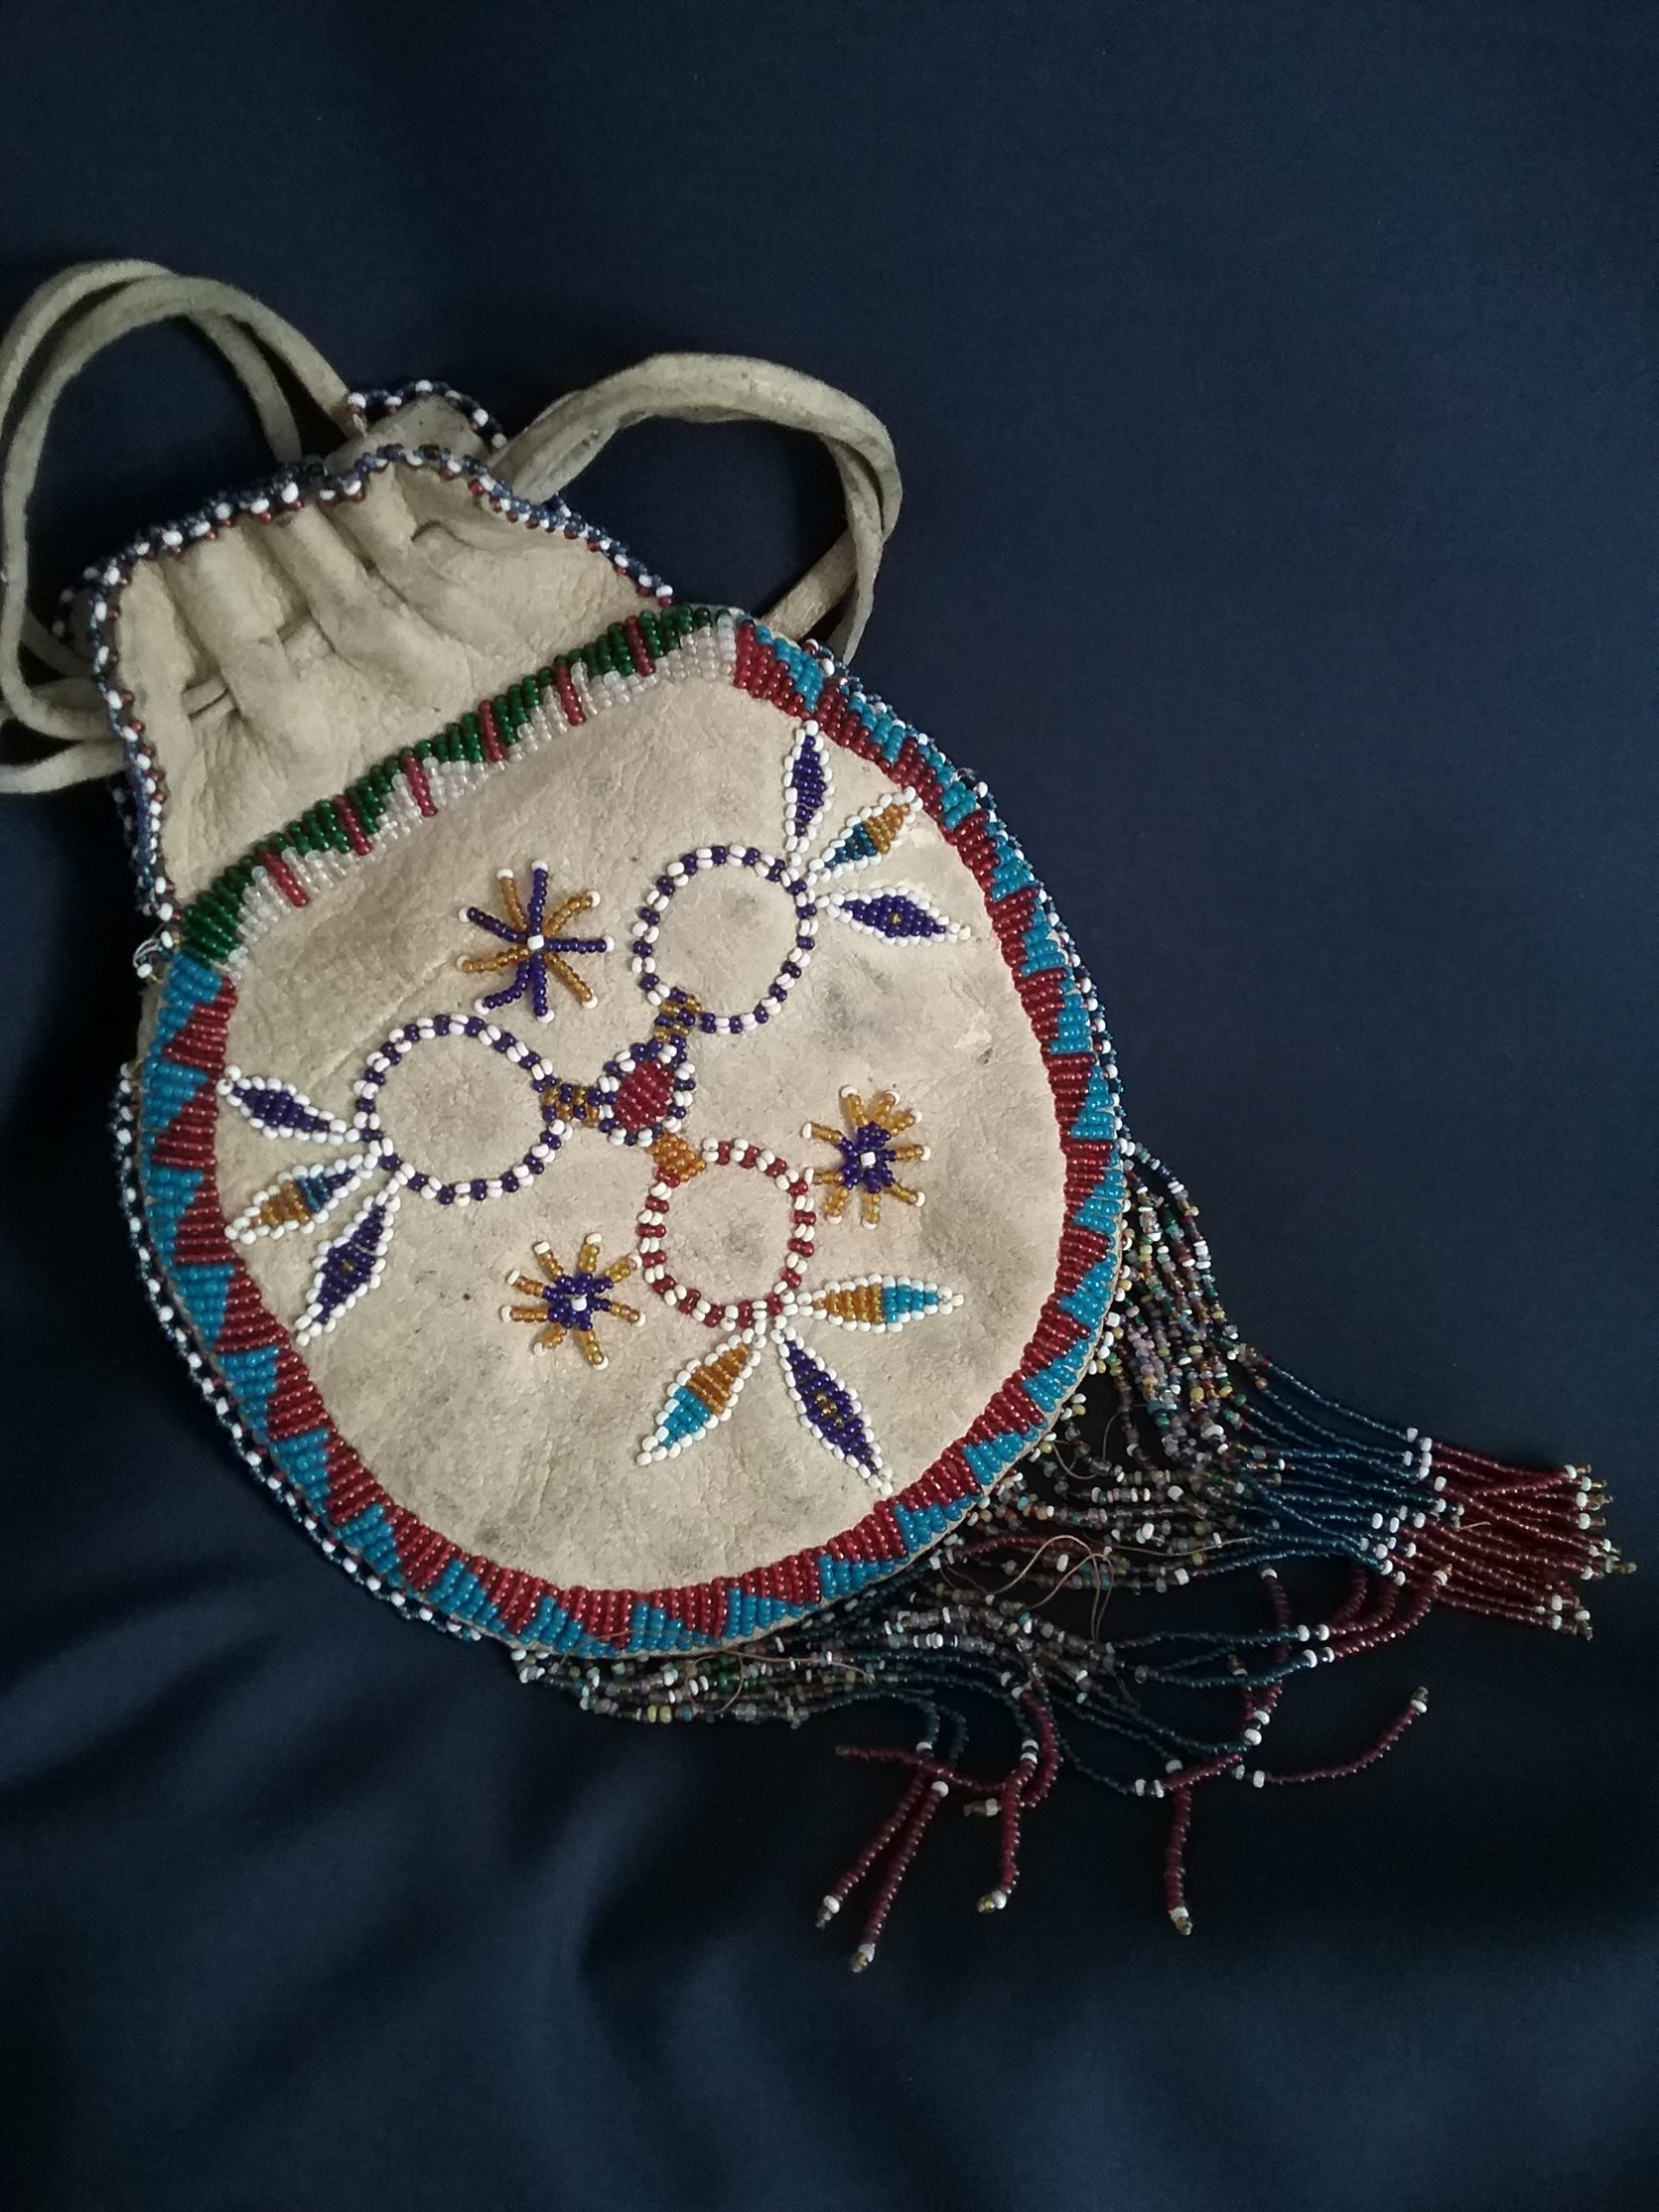 Beaded leather bag (back) from Native American tribe of unknown origin. Donated by Helen Ray. MCHS collections, #1984.14.1.